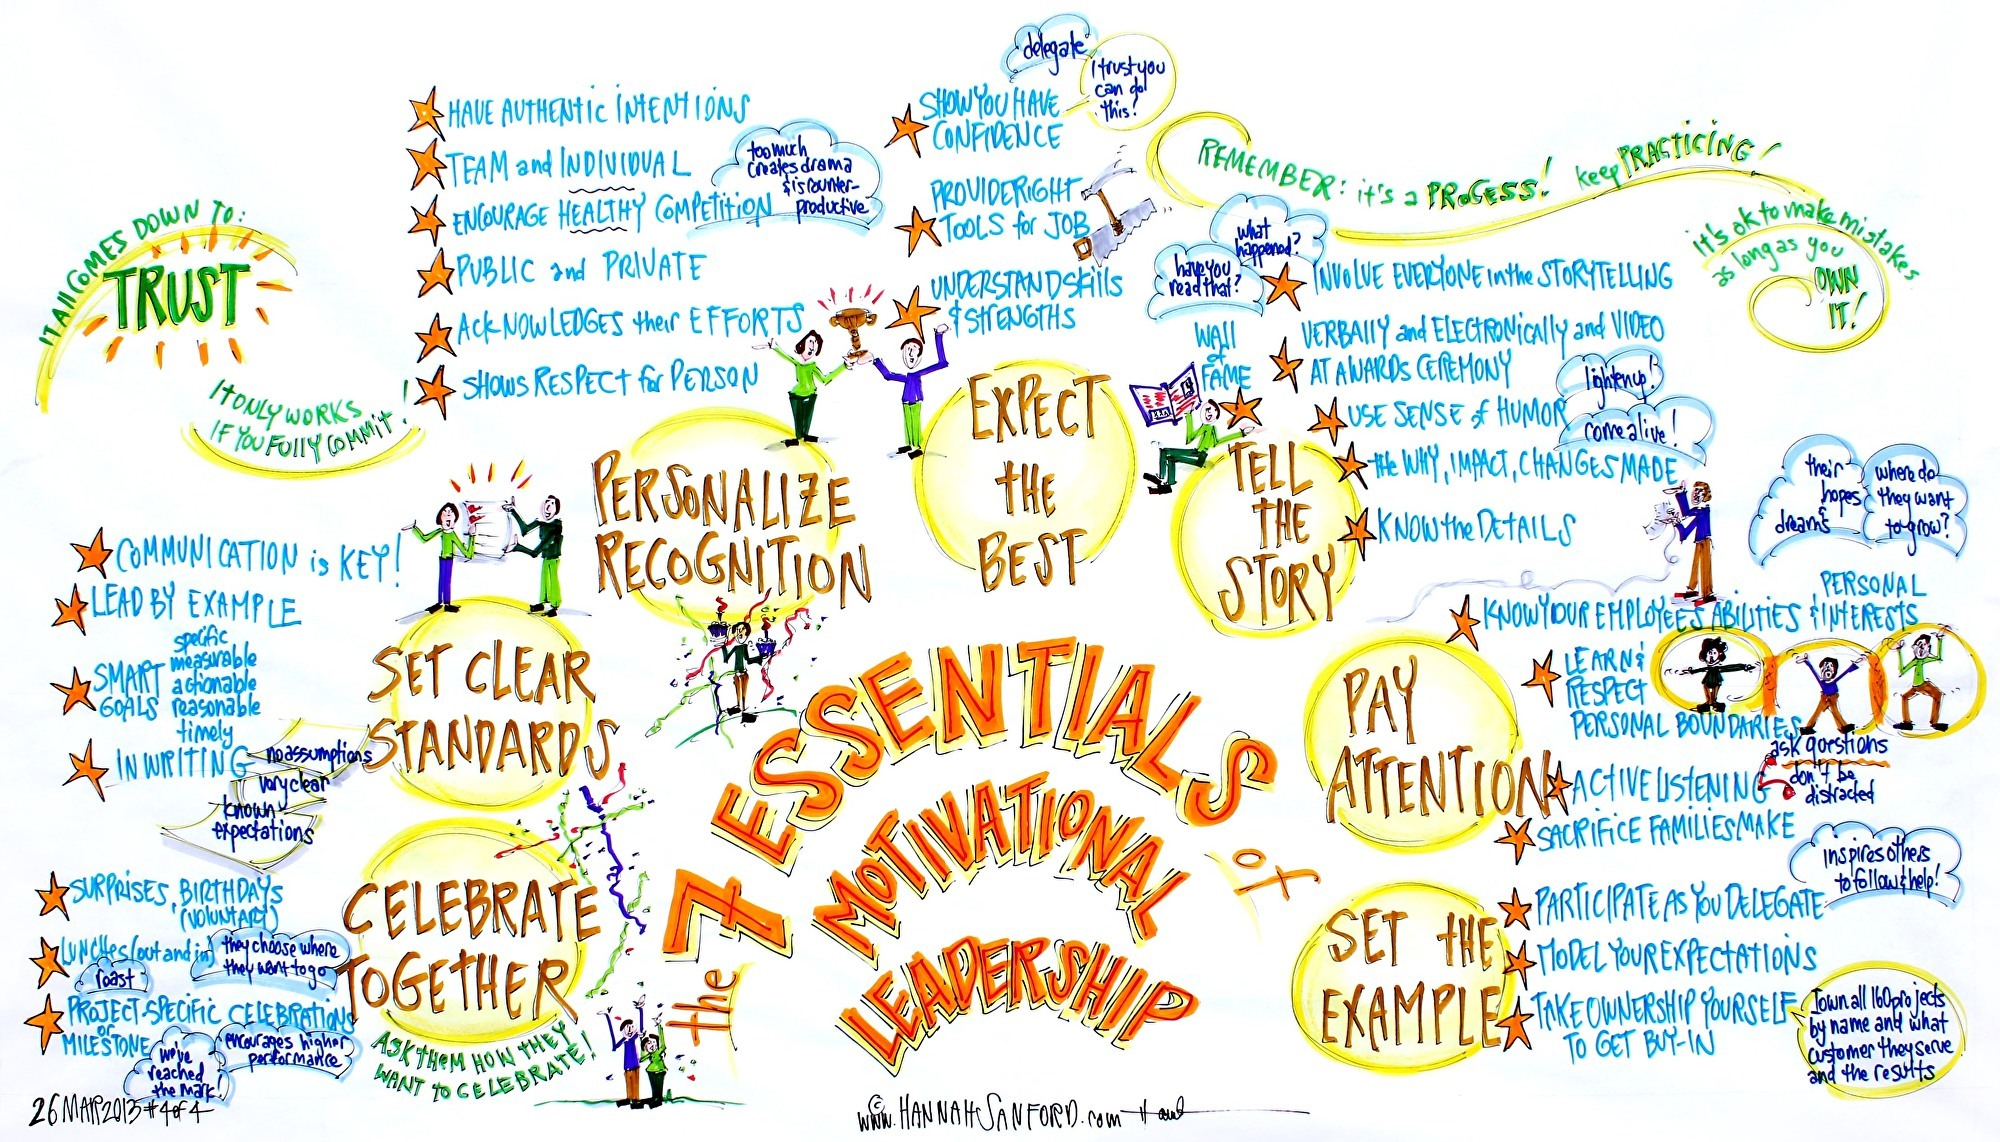 THE 7 ESSENTIALS OF MOTIVATIONAL LEADERSHIP